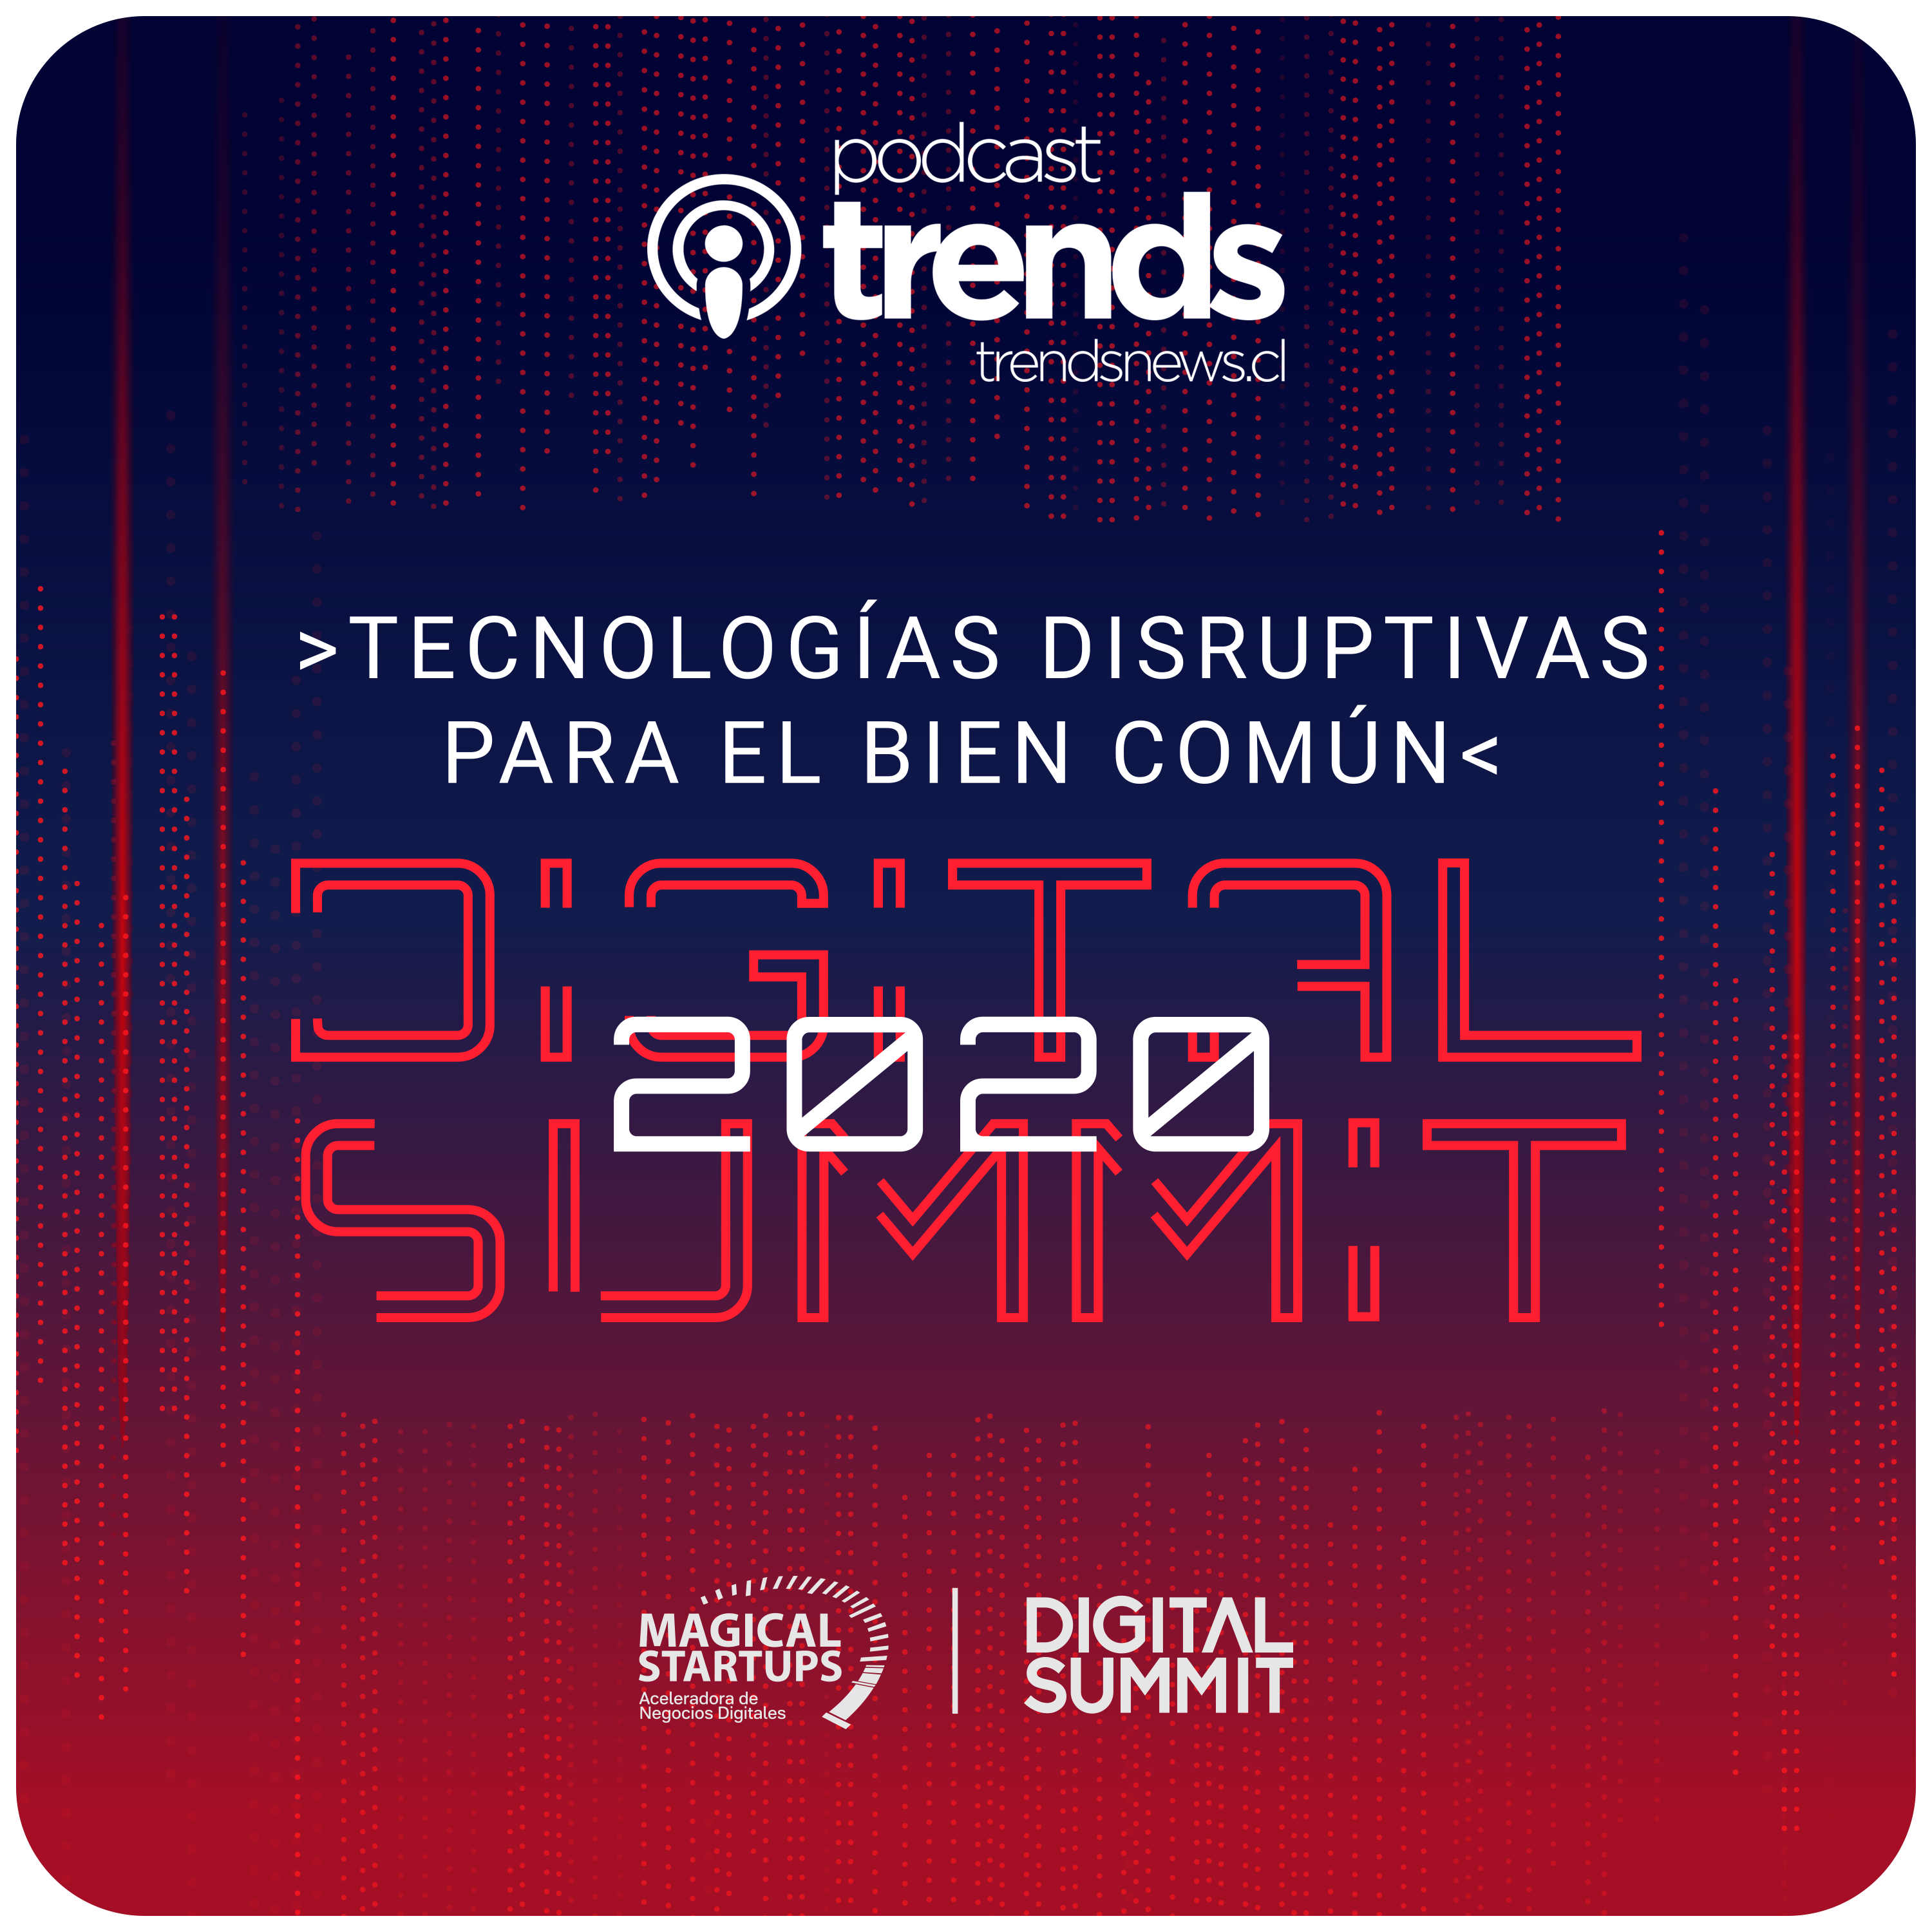 COVER-DIGITAL-SUMMIT-2020-TRENDS-PODCAST